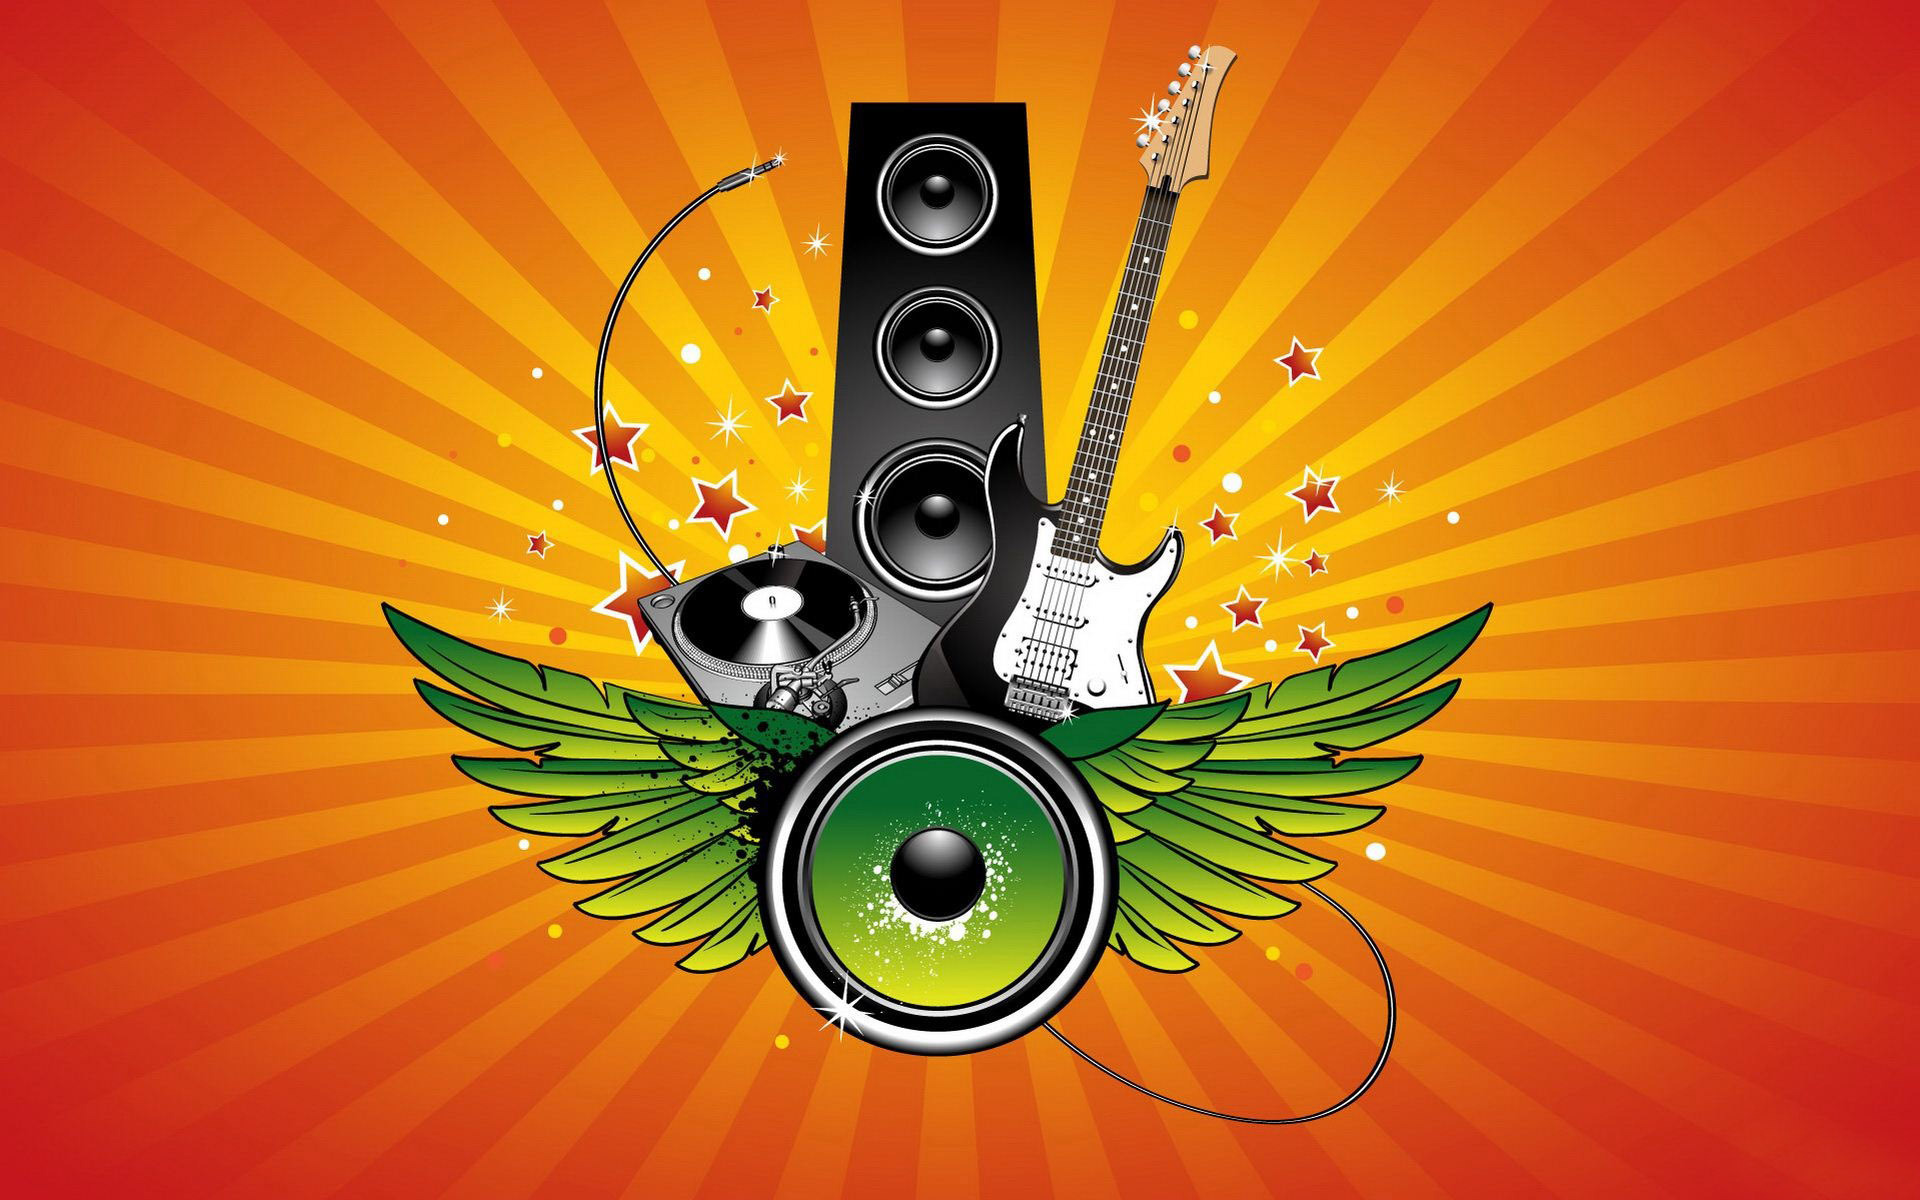 Iphone Wallpapers Hd Zedge Download Dj Sound System Wallpaper Gallery